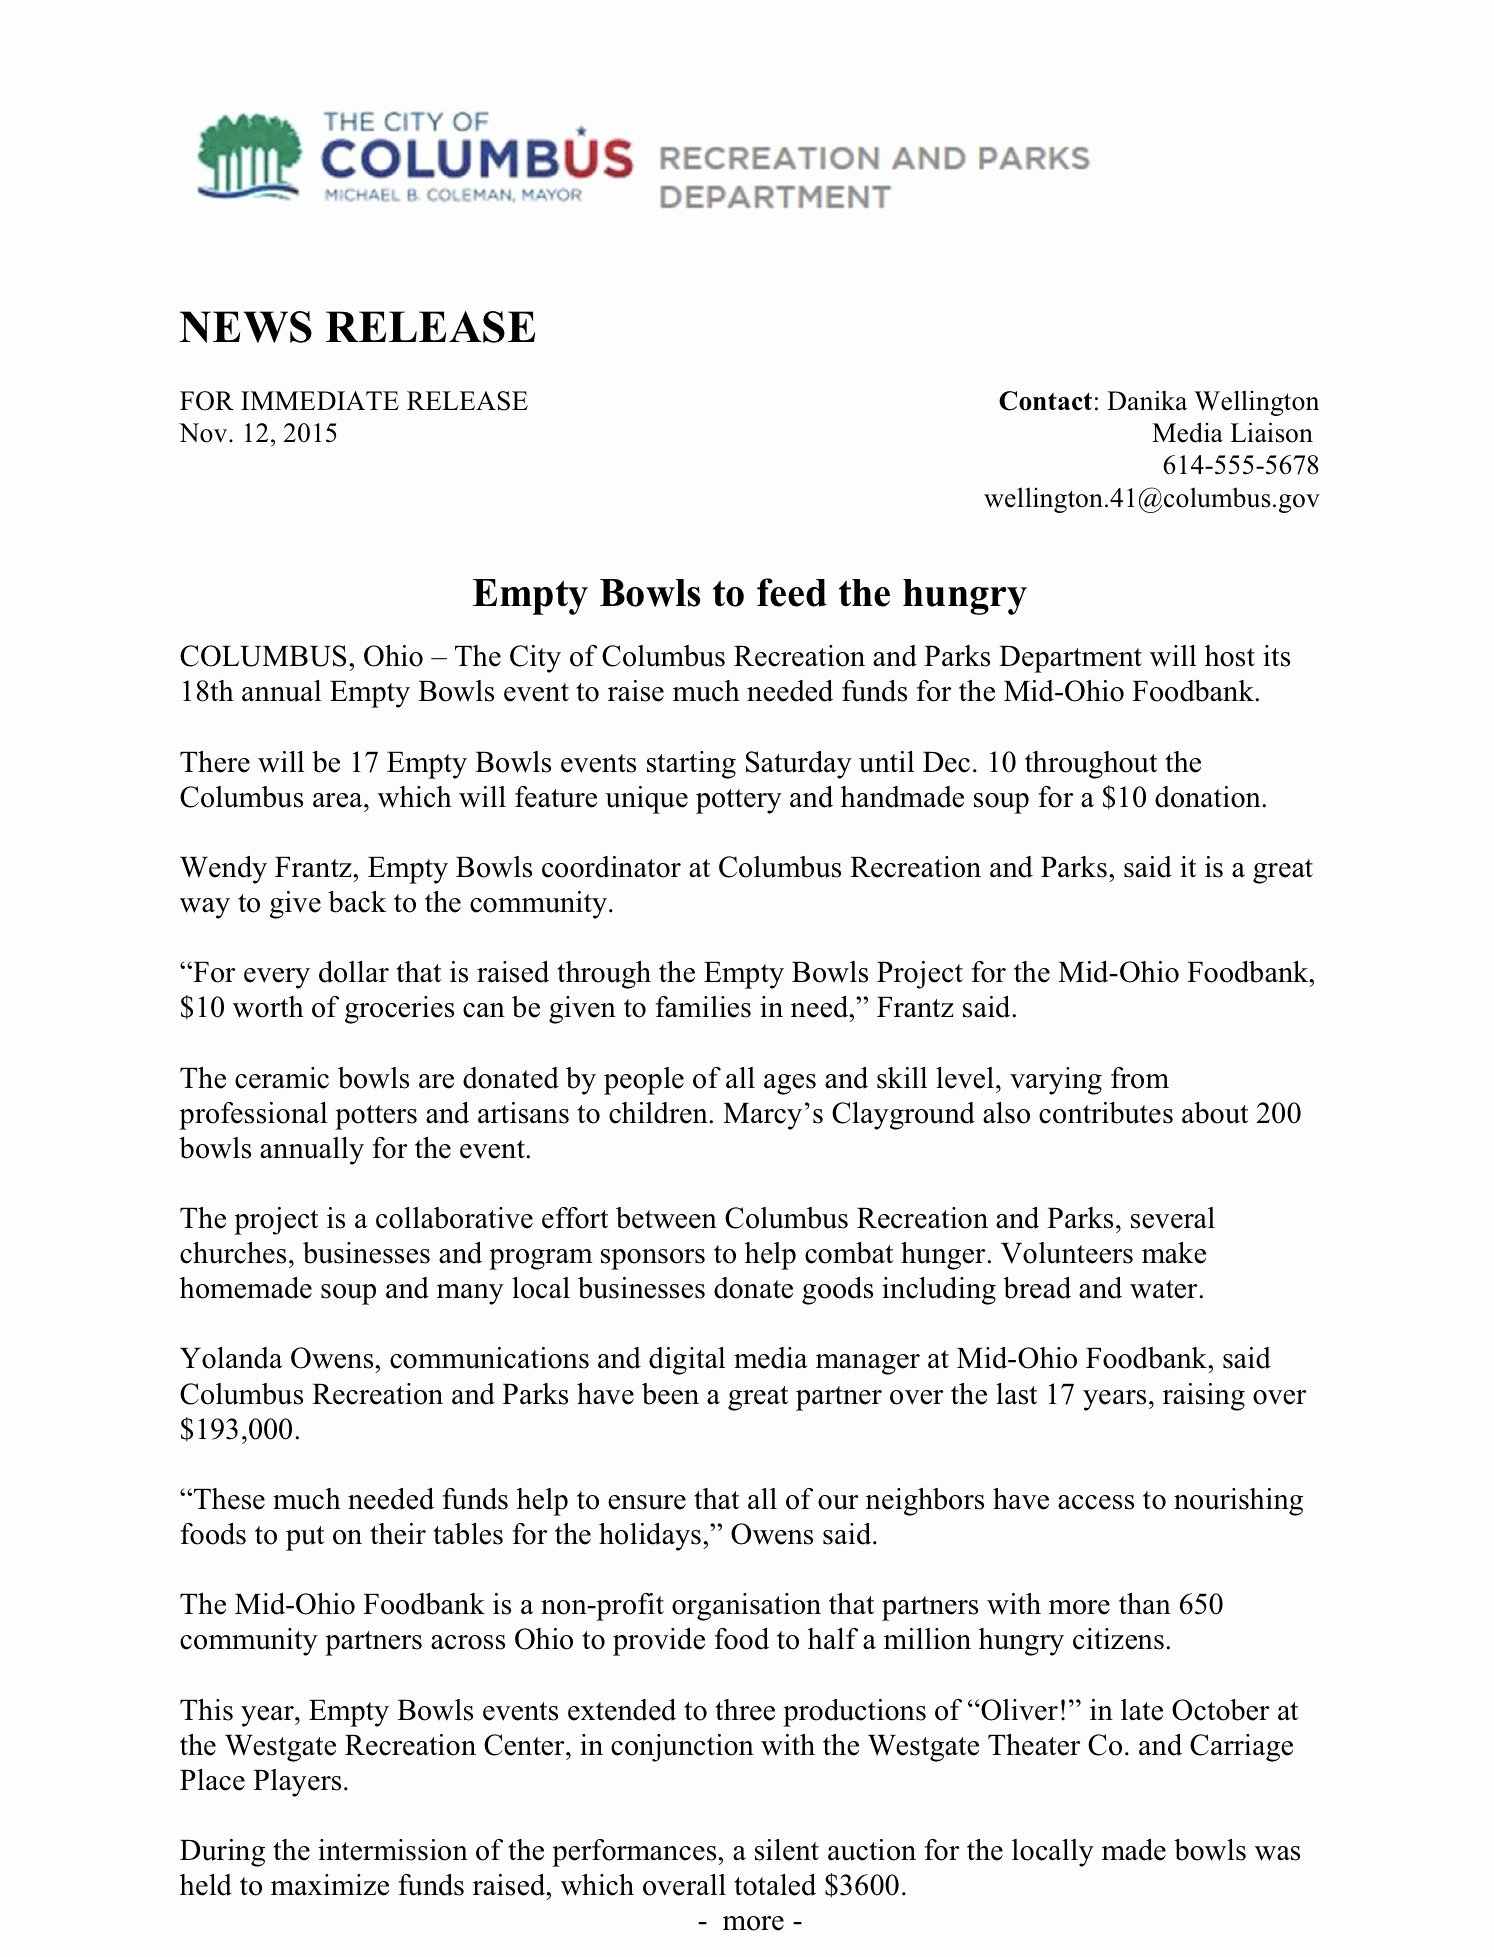 Press Release format Template Fresh Press Release Structure and format – Writing for Strategic